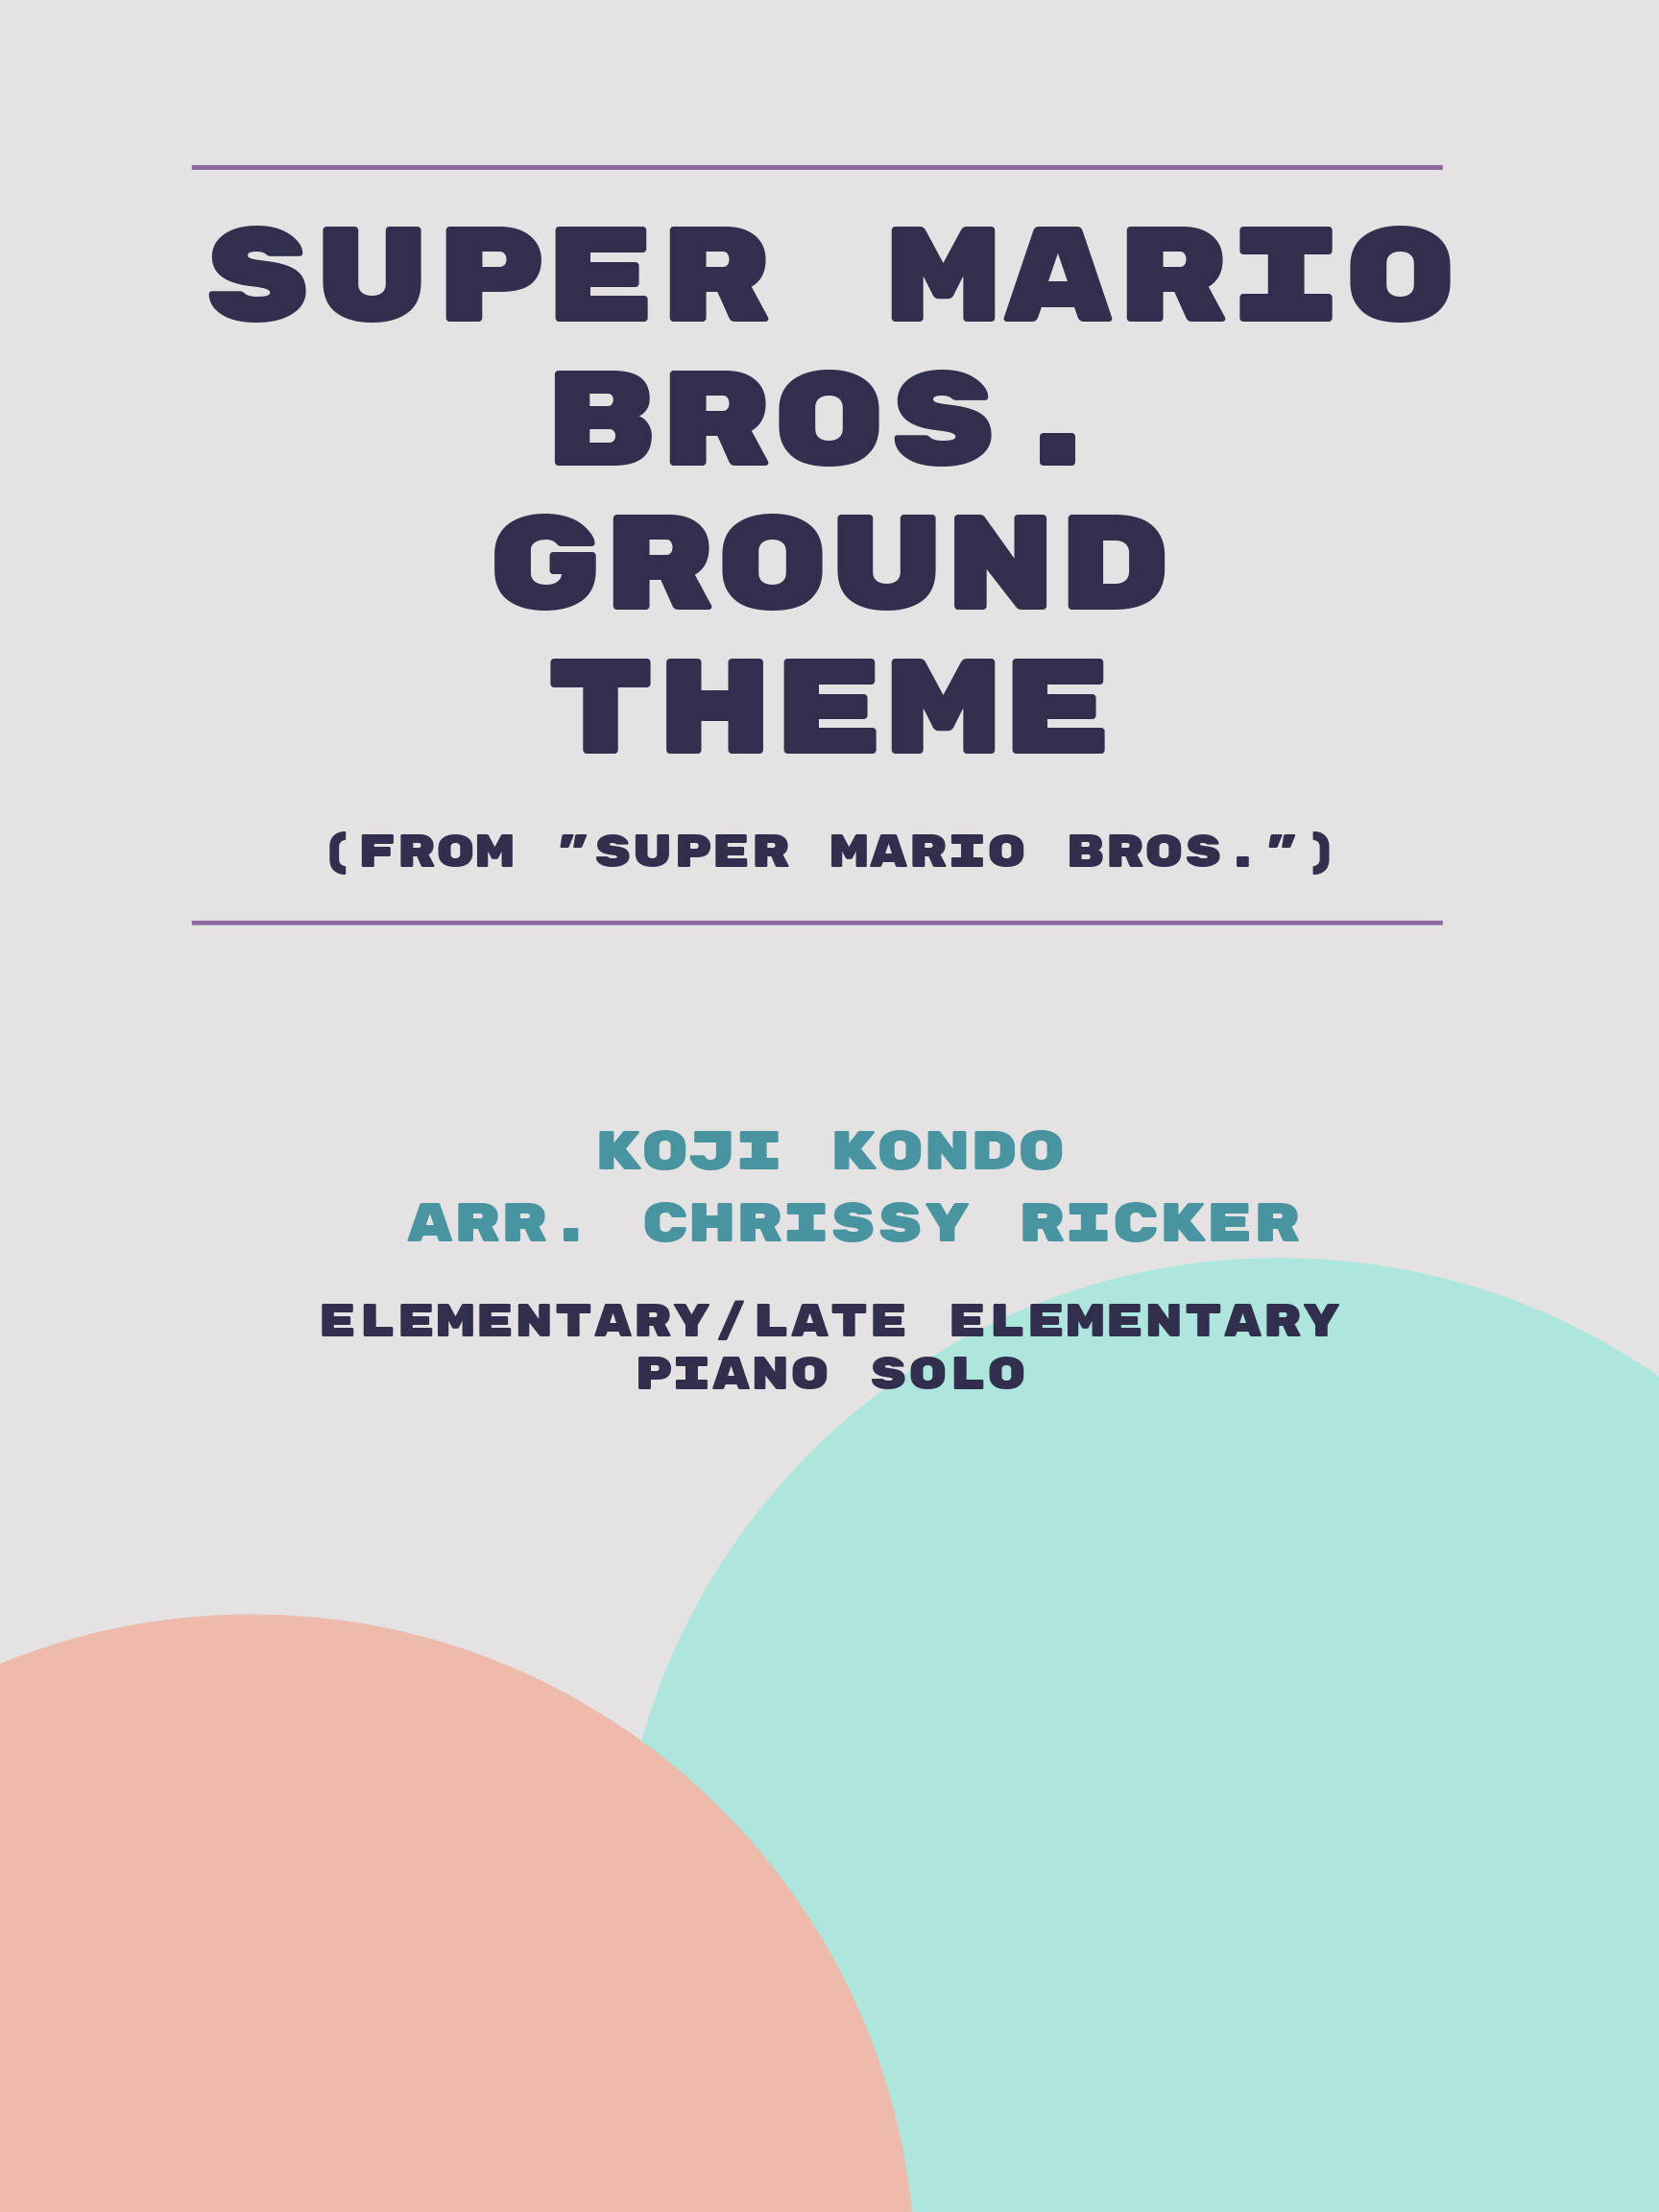 Super Mario Bros. Ground Theme Sample Page